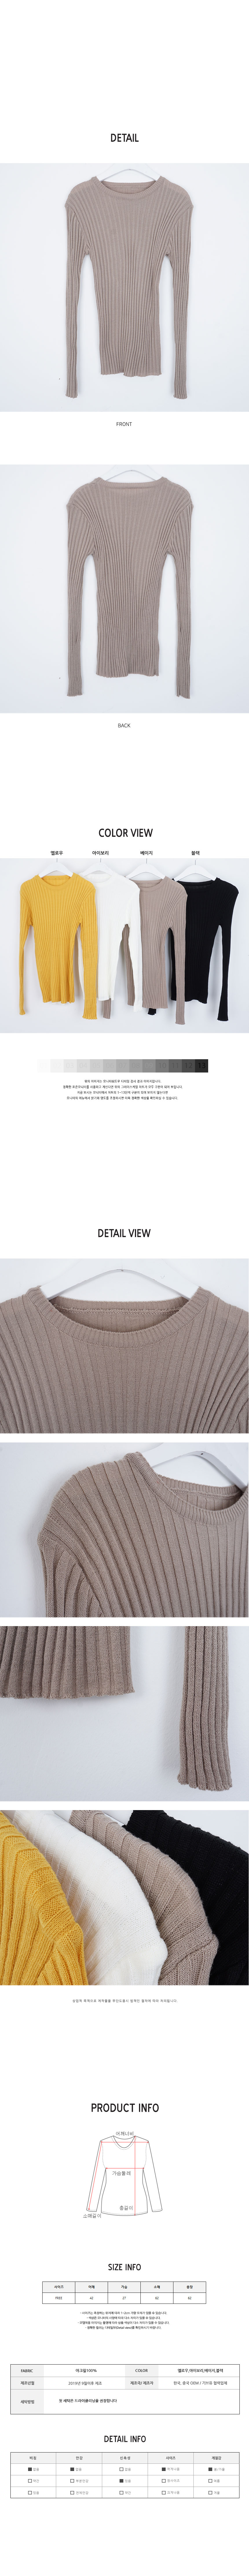 Wort ribbed round knit